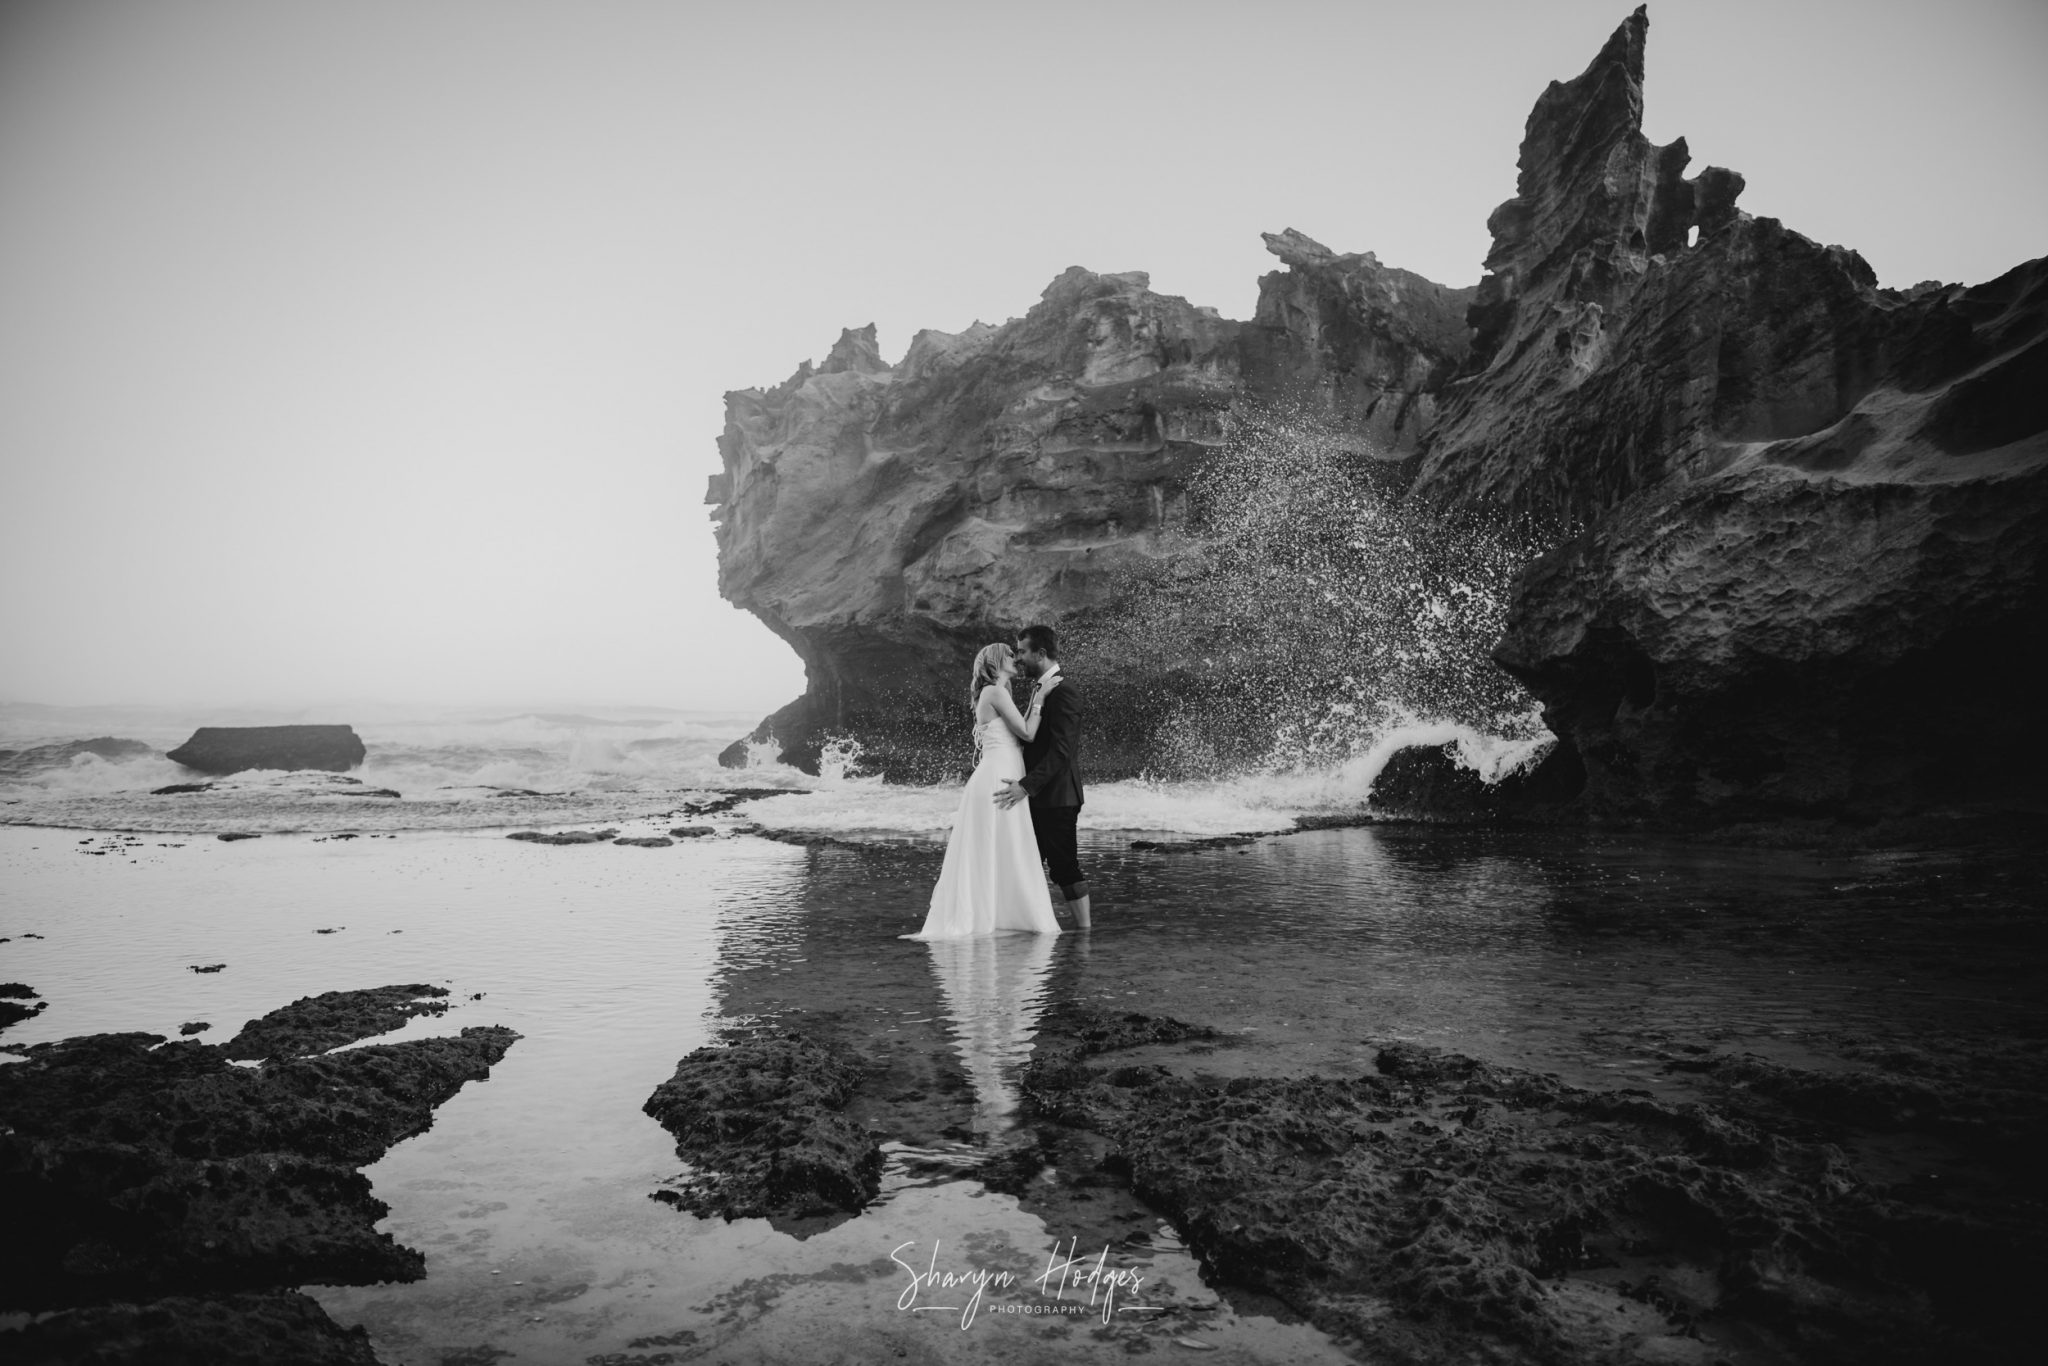 Lucia & Neil's trash the dress shoot took place during a misty sunset at Brenton On Sea in Knysna, photography by Sharyn Hodges.